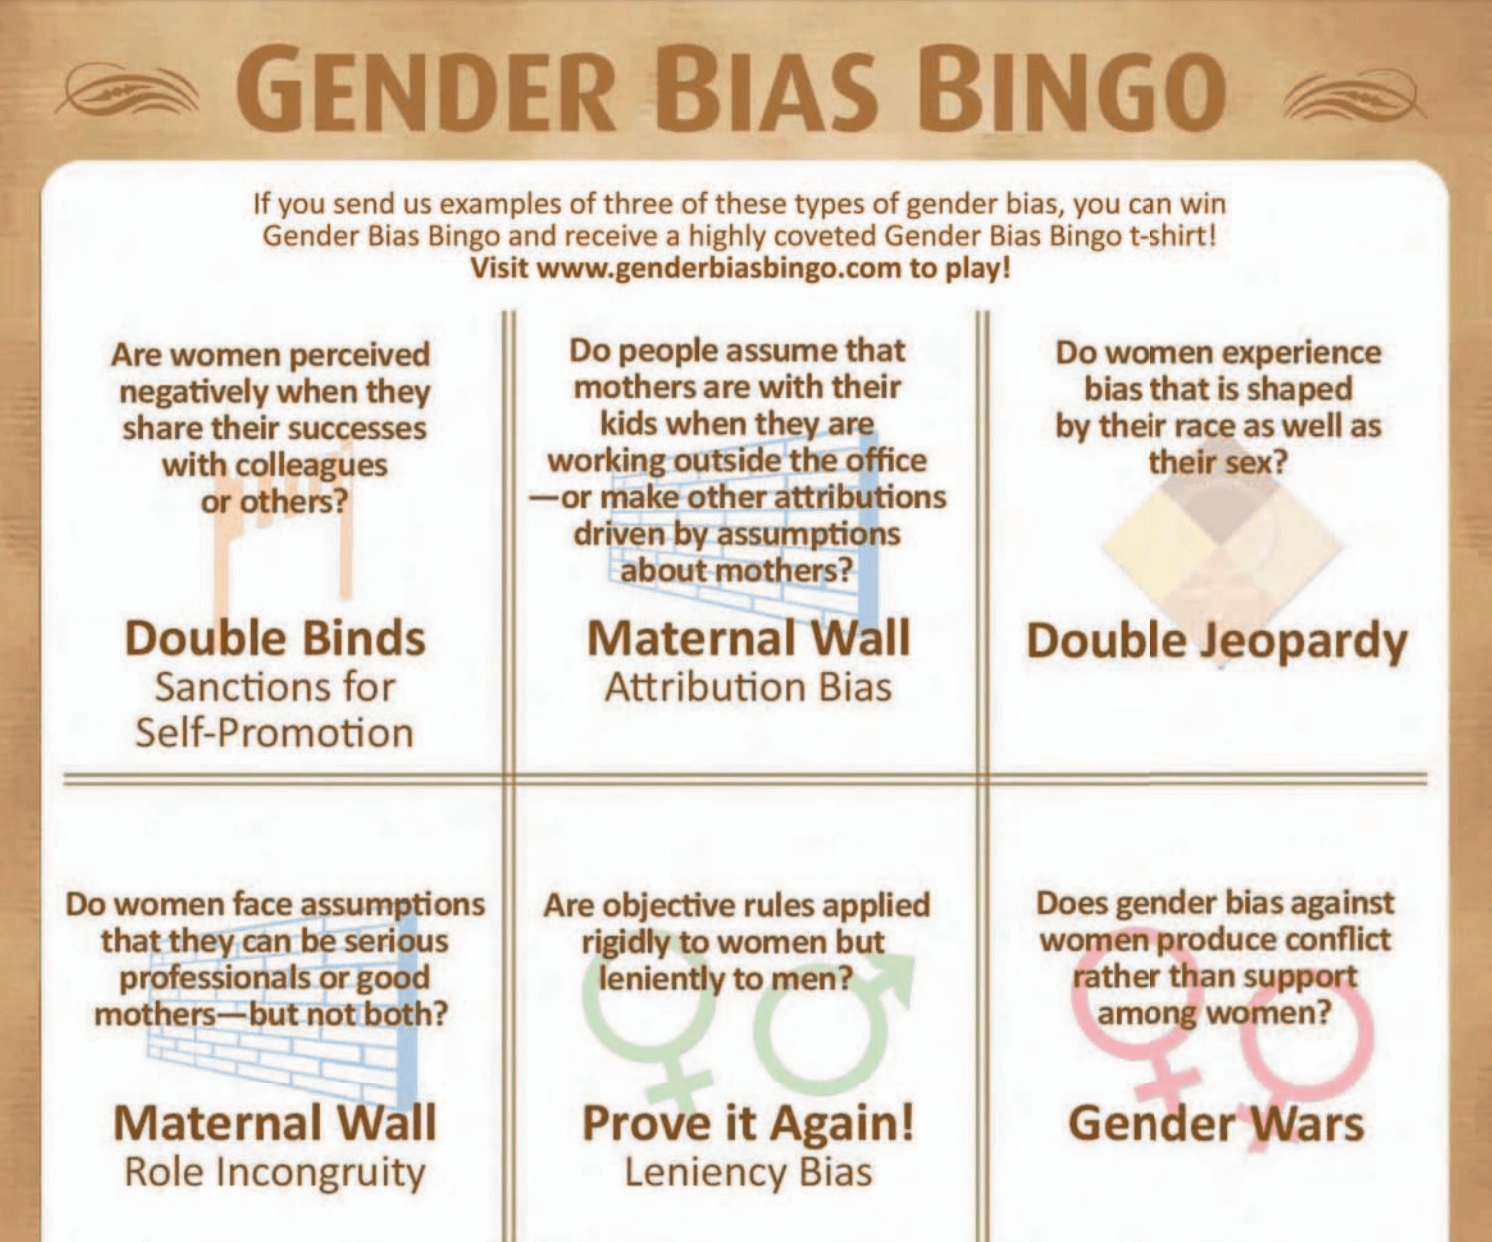 Gender Bias Bingo